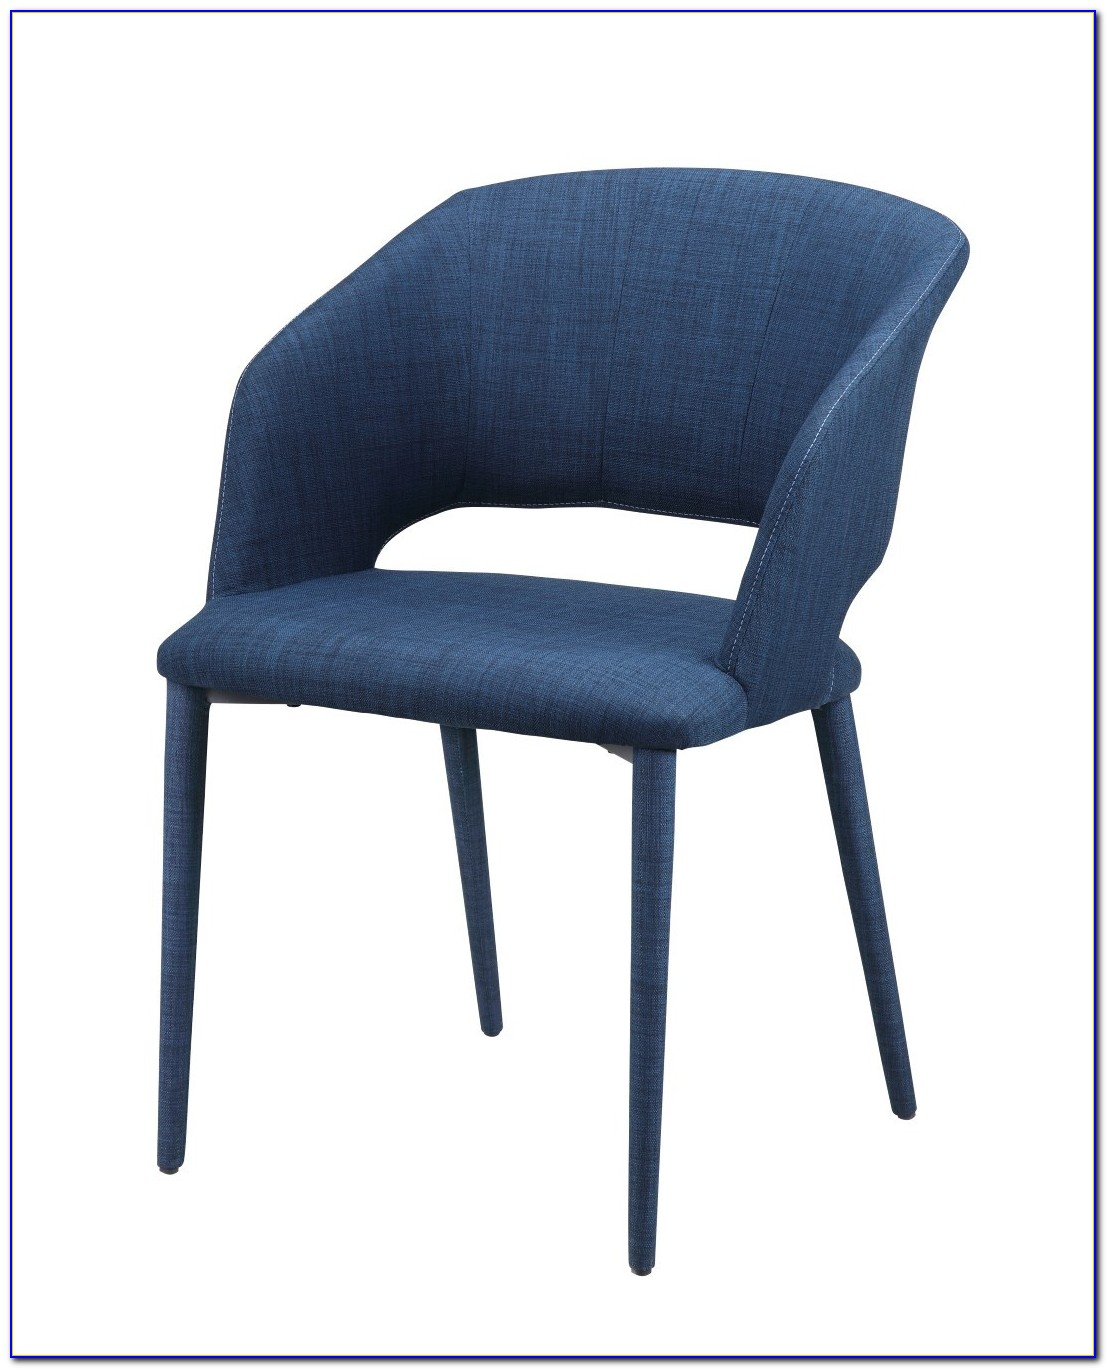 Navy Blue Dining Chairs Australia